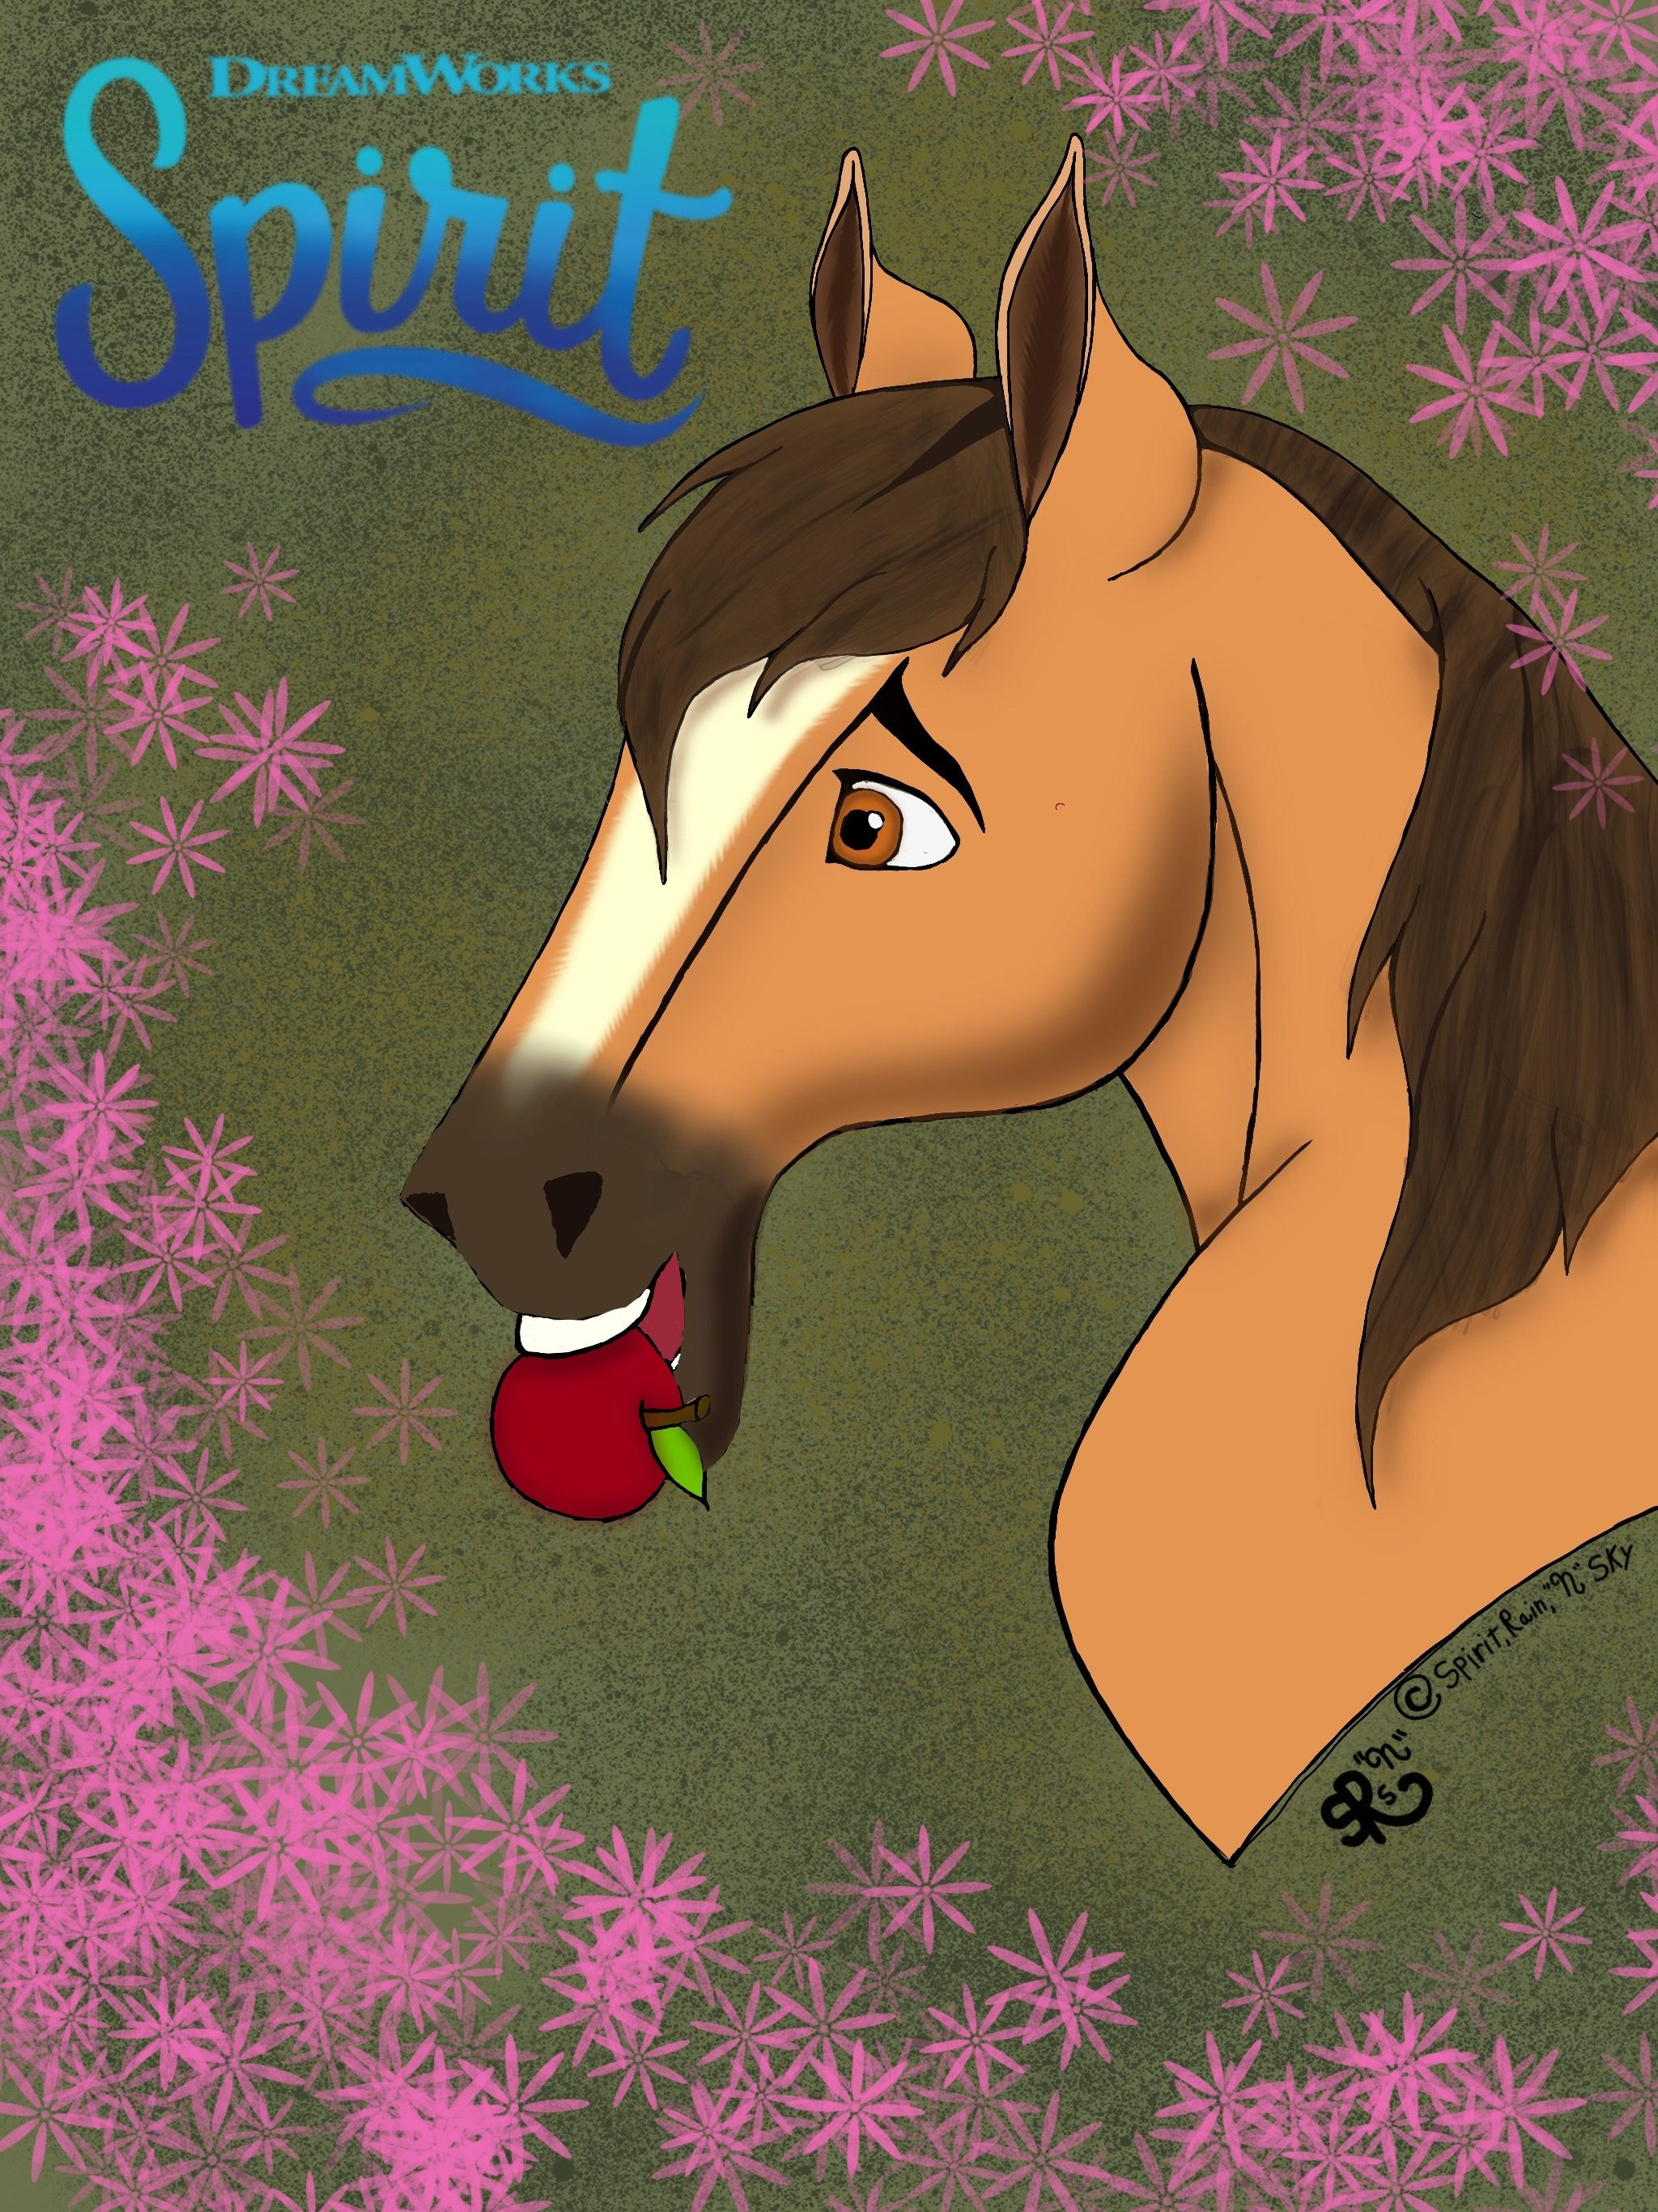 ShowYourSpirit SpiritRidingFree This Is My Submission For The Spirit Riding Free Star Stable